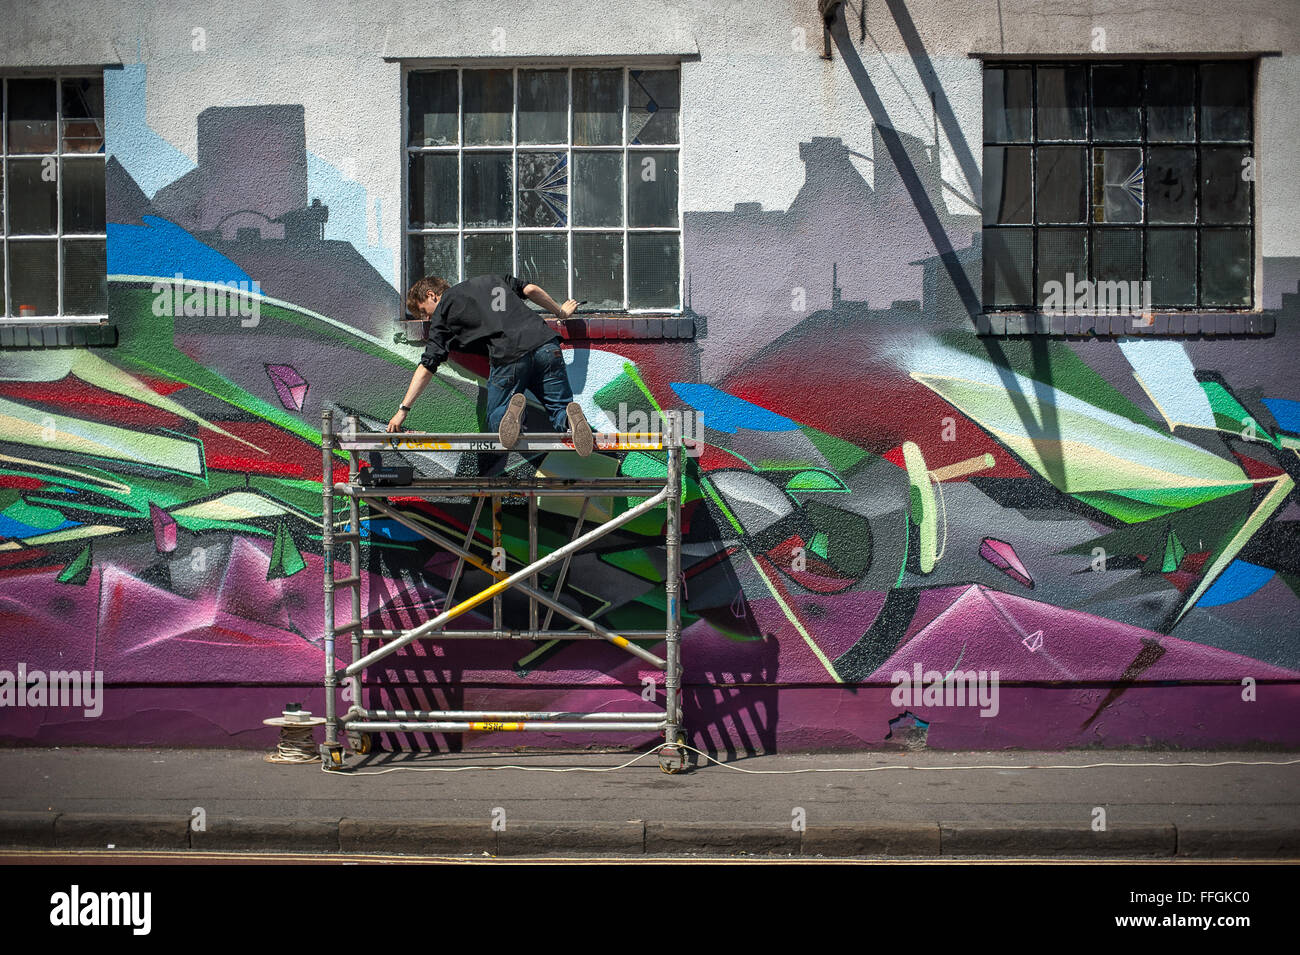 Street artist painting on a sunny afternoon, Stokes Croft, Bristol, England - Stock Image